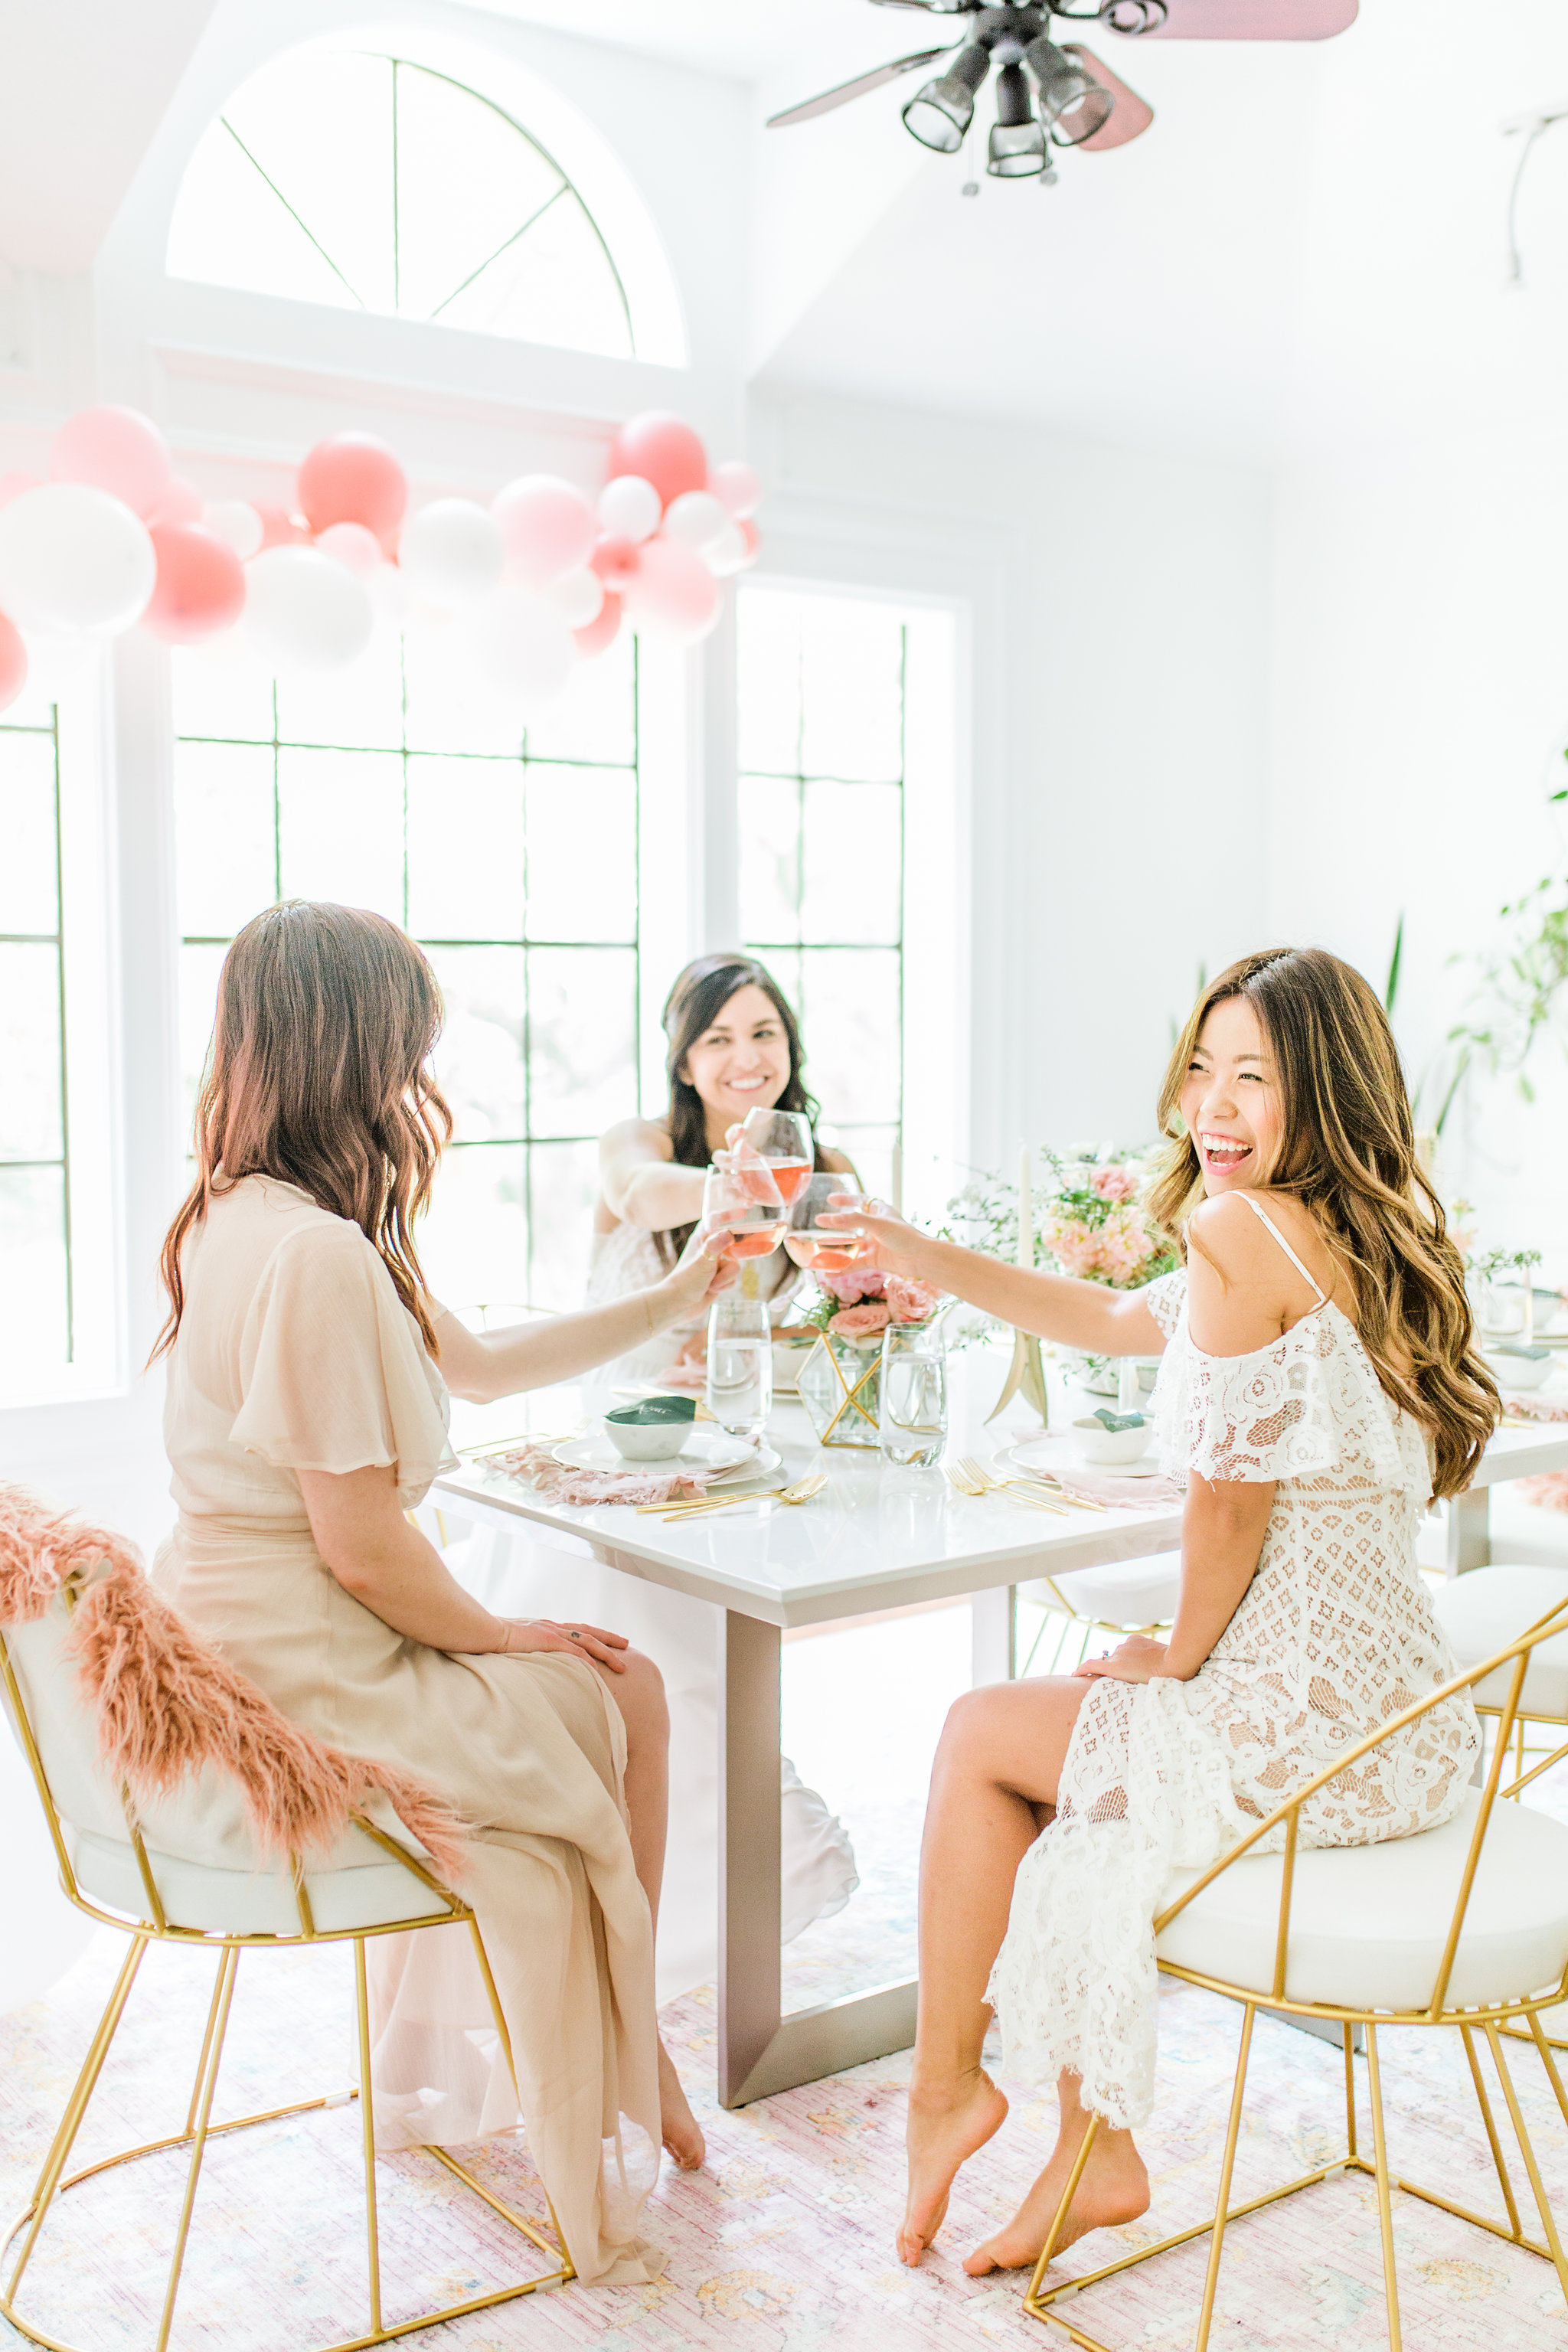 Olivia and Oliver Gold, Blush and Greenry Plants Gilded Garden Styled Bridal Shower Brunch with Bed Bath Beyond bridal shower ideas with pink ballons Joyfullygreen.jpg